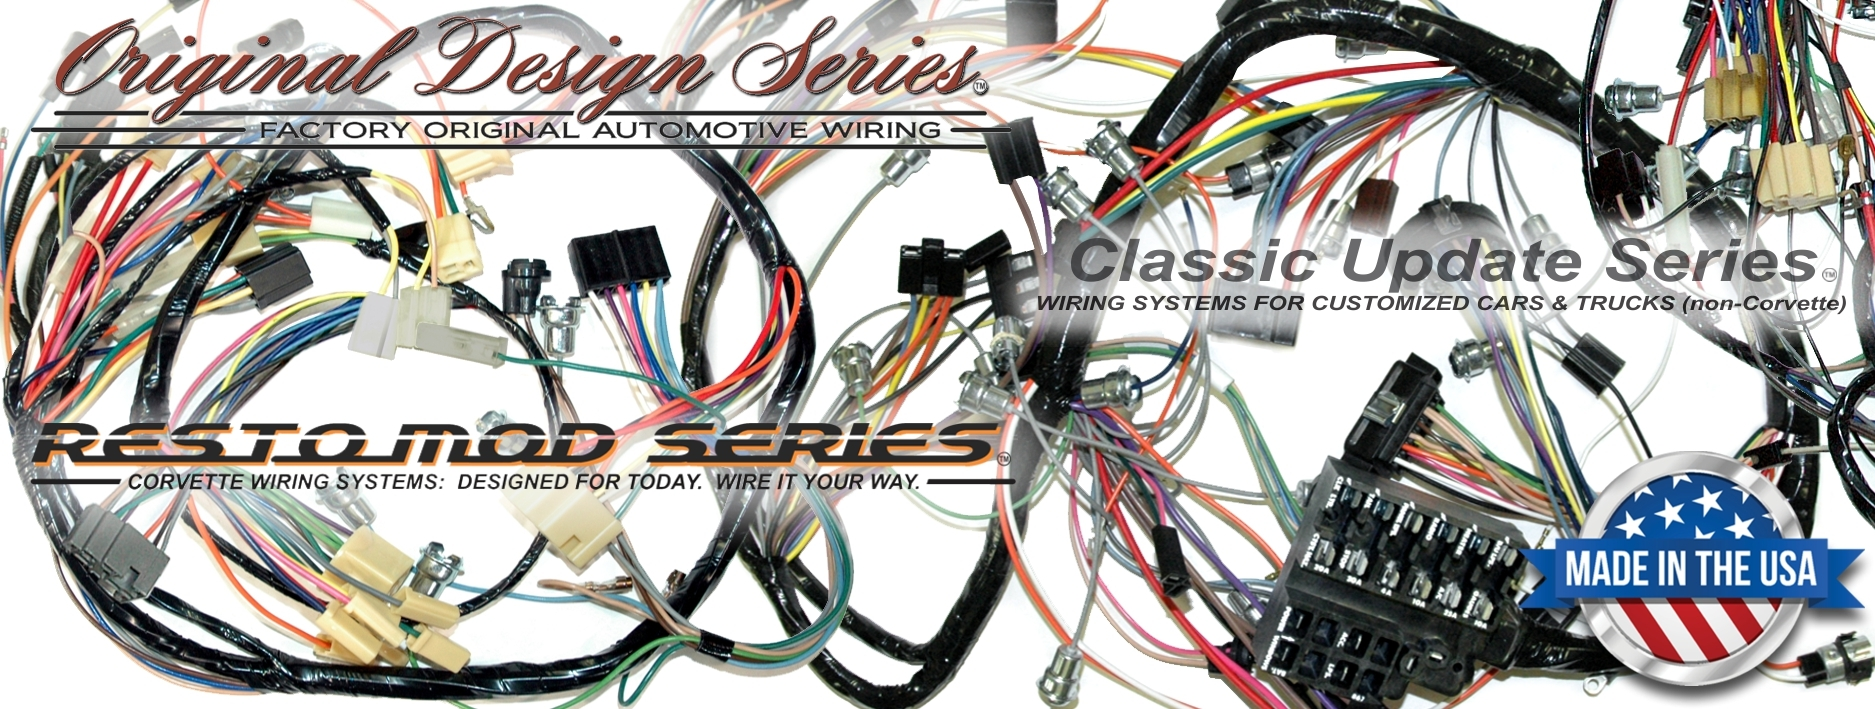 Exact Oem Reproduction Wiring Harnesses And Restomod Systems 1965 Impala Ac Individual Complete